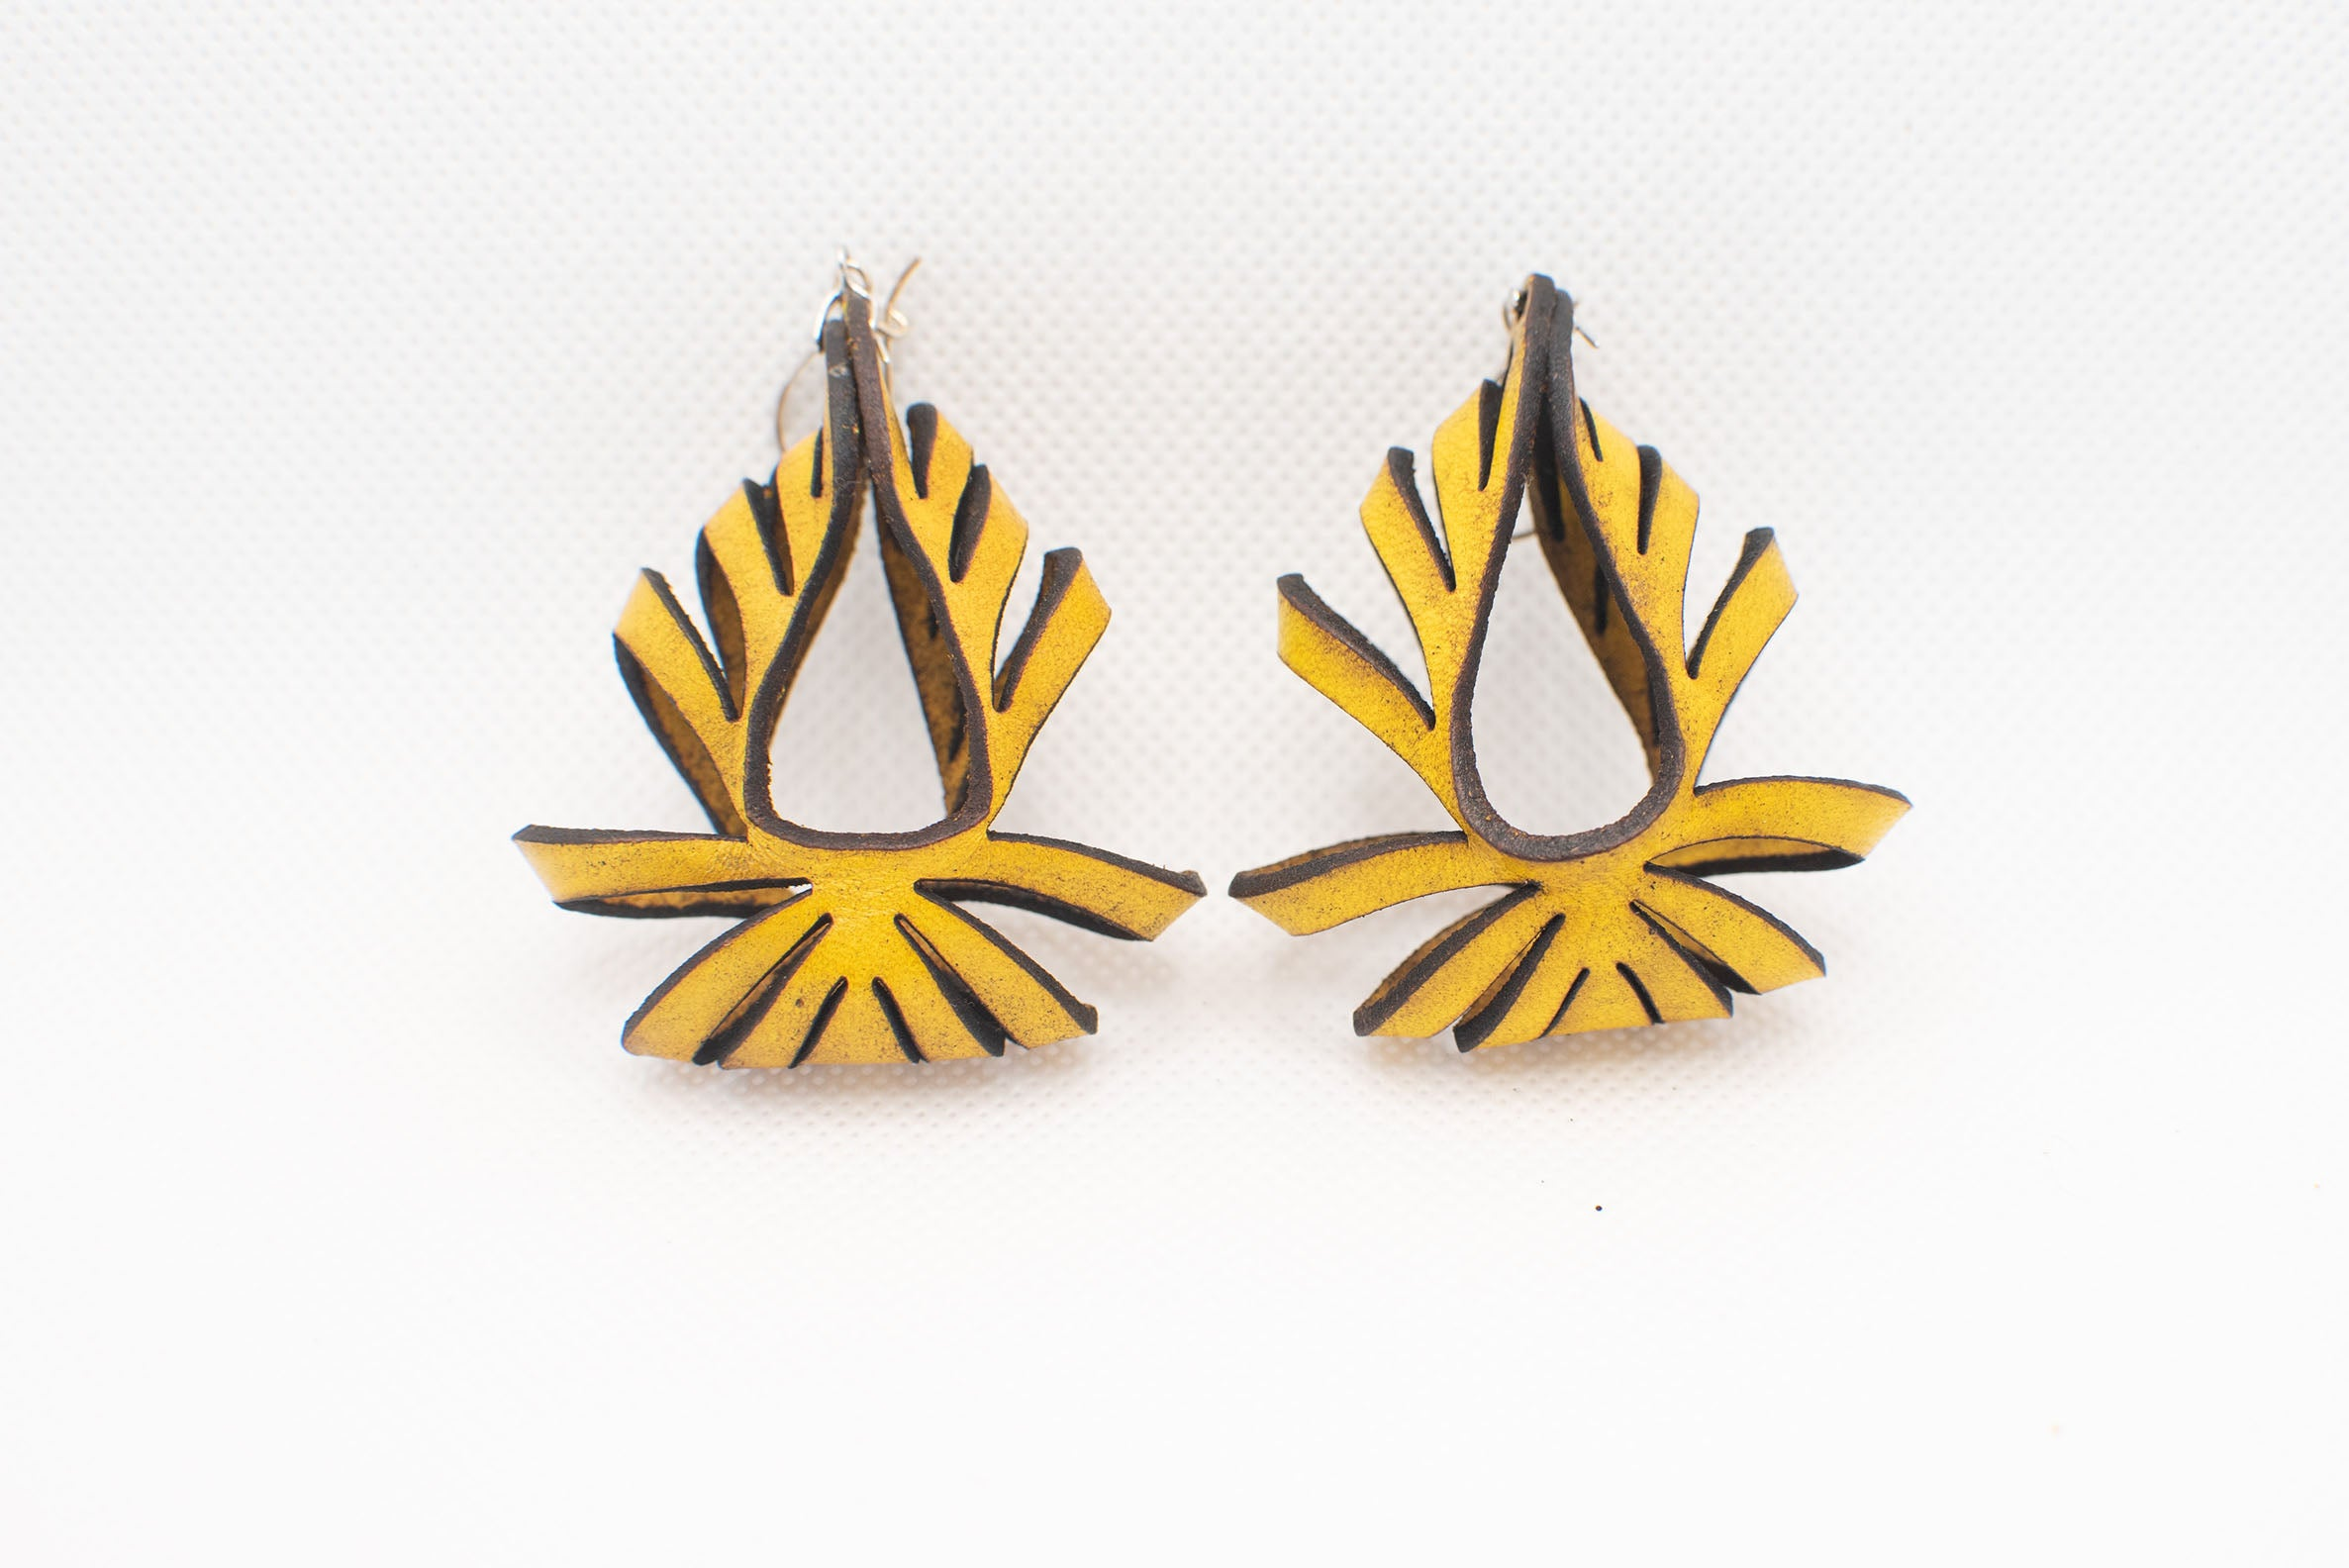 Ava Medium Leather Earrings - Yellow Ochre (Hand Dyed) - Amber Poitier Inc.